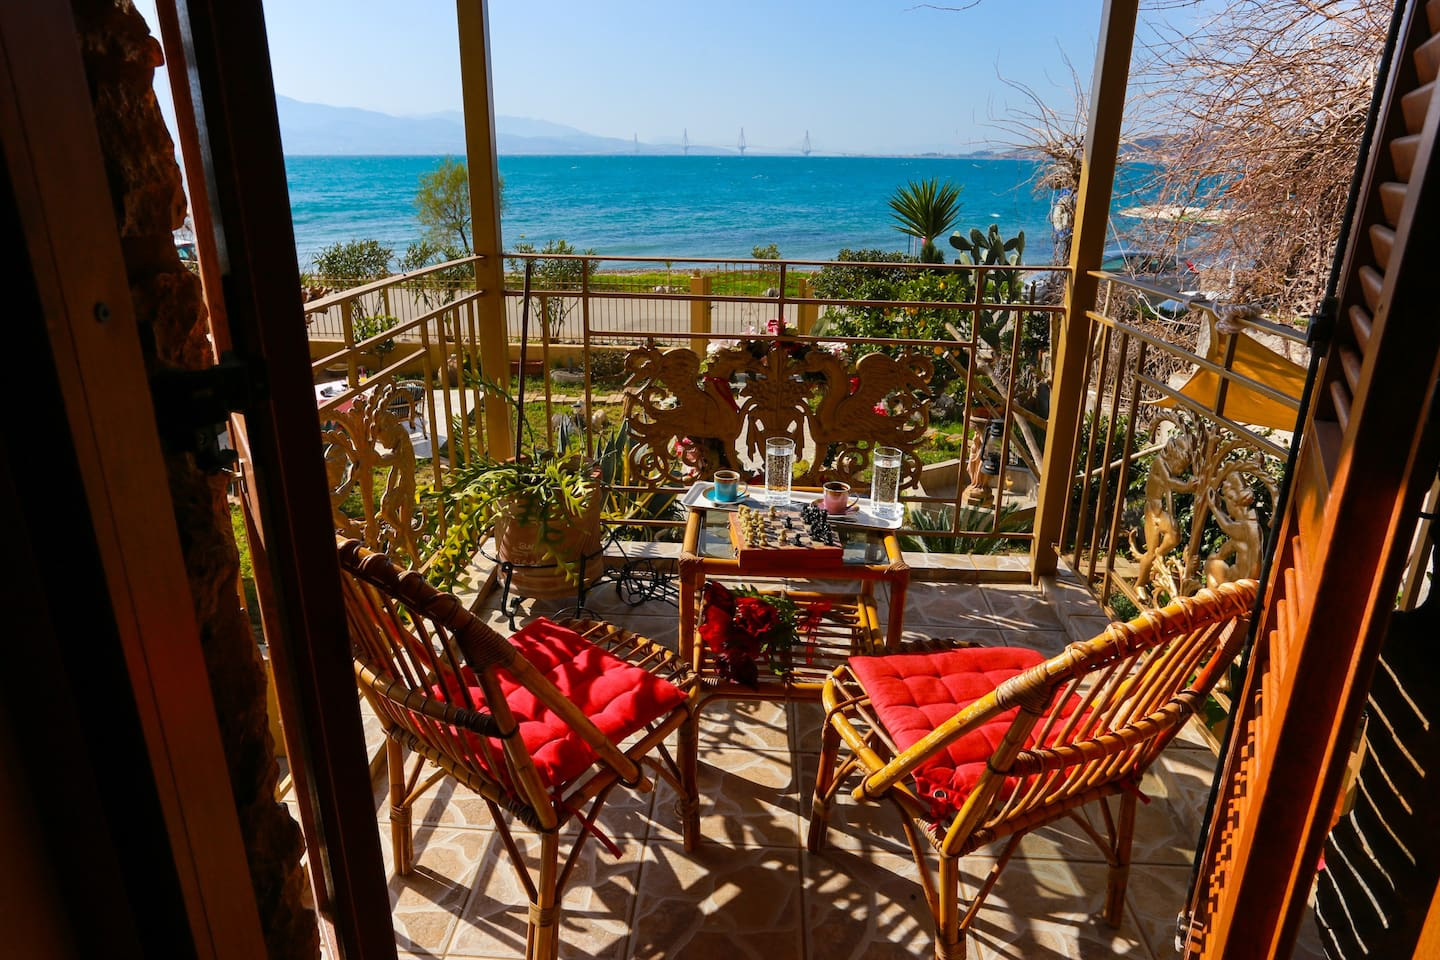 Balcony on the 1st floor with a panoramic view of the Corinthian Gulf and the Rio-Antirrio Bridge